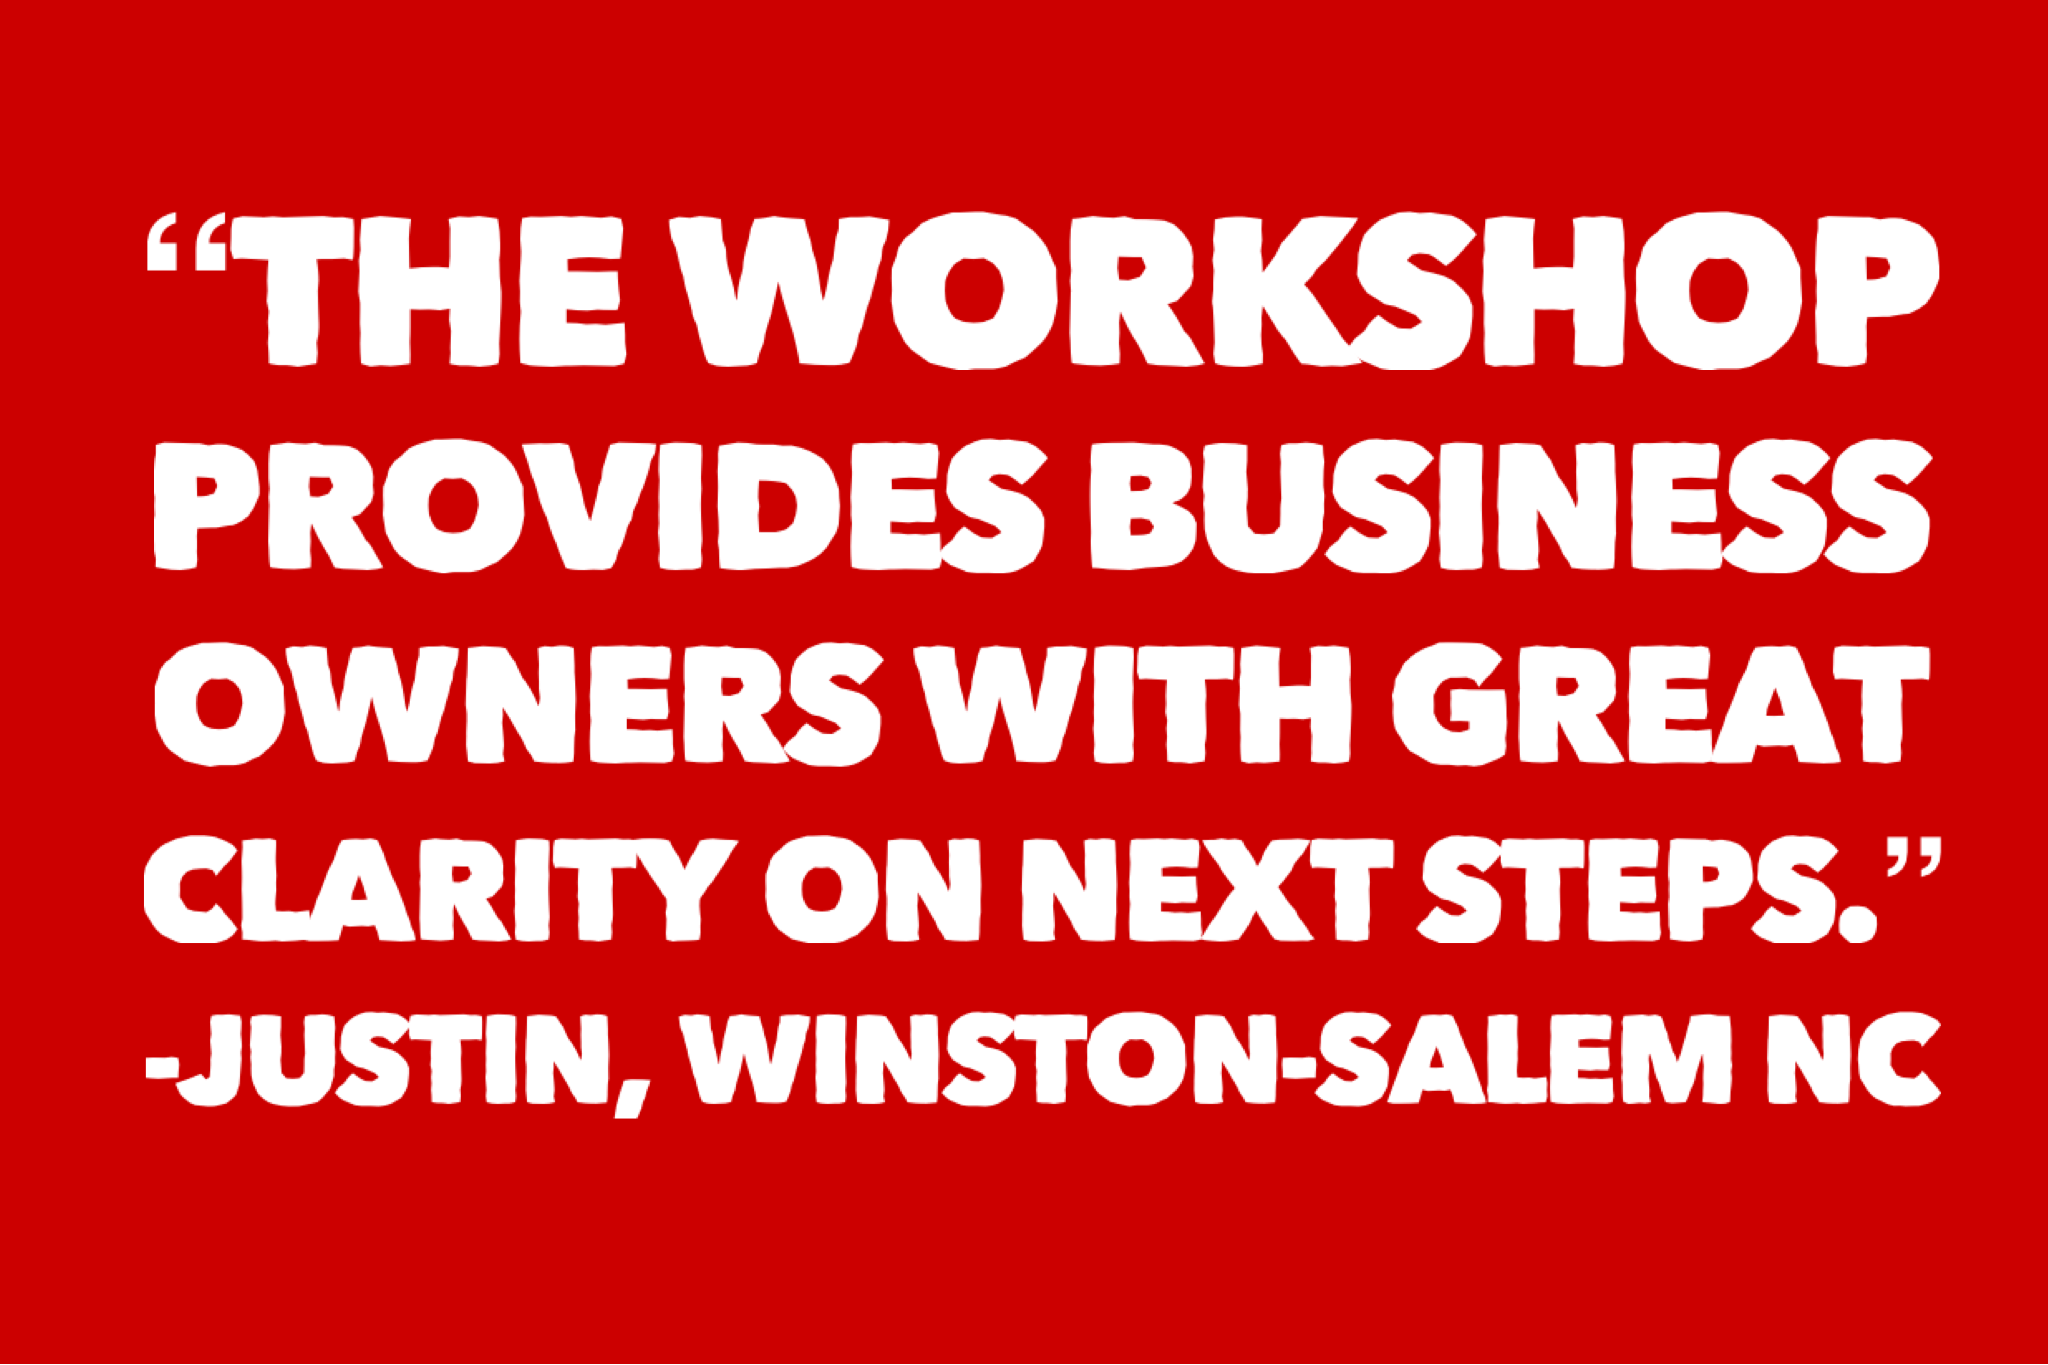 The workshop provides business owners with great clarity on next steps.